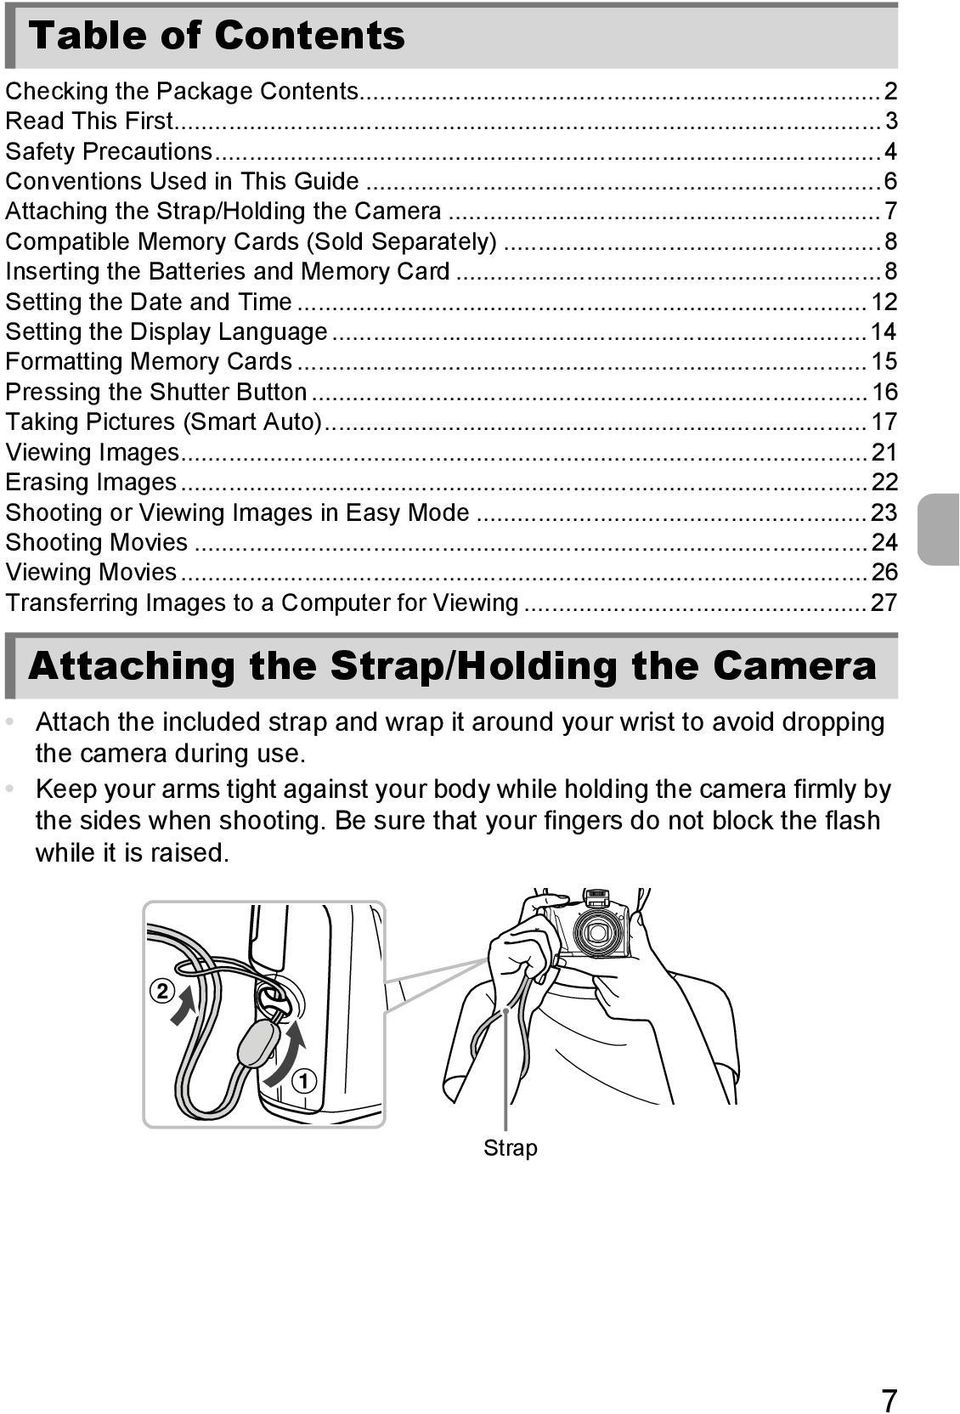 ..15 Pressing the Shutter Button...16 Taking Pictures (Smart Auto)... 17 Viewing Images... 21 Erasing Images... 22 Shooting or Viewing Images in Easy Mode...23 Shooting Movies... 24 Viewing Movies.